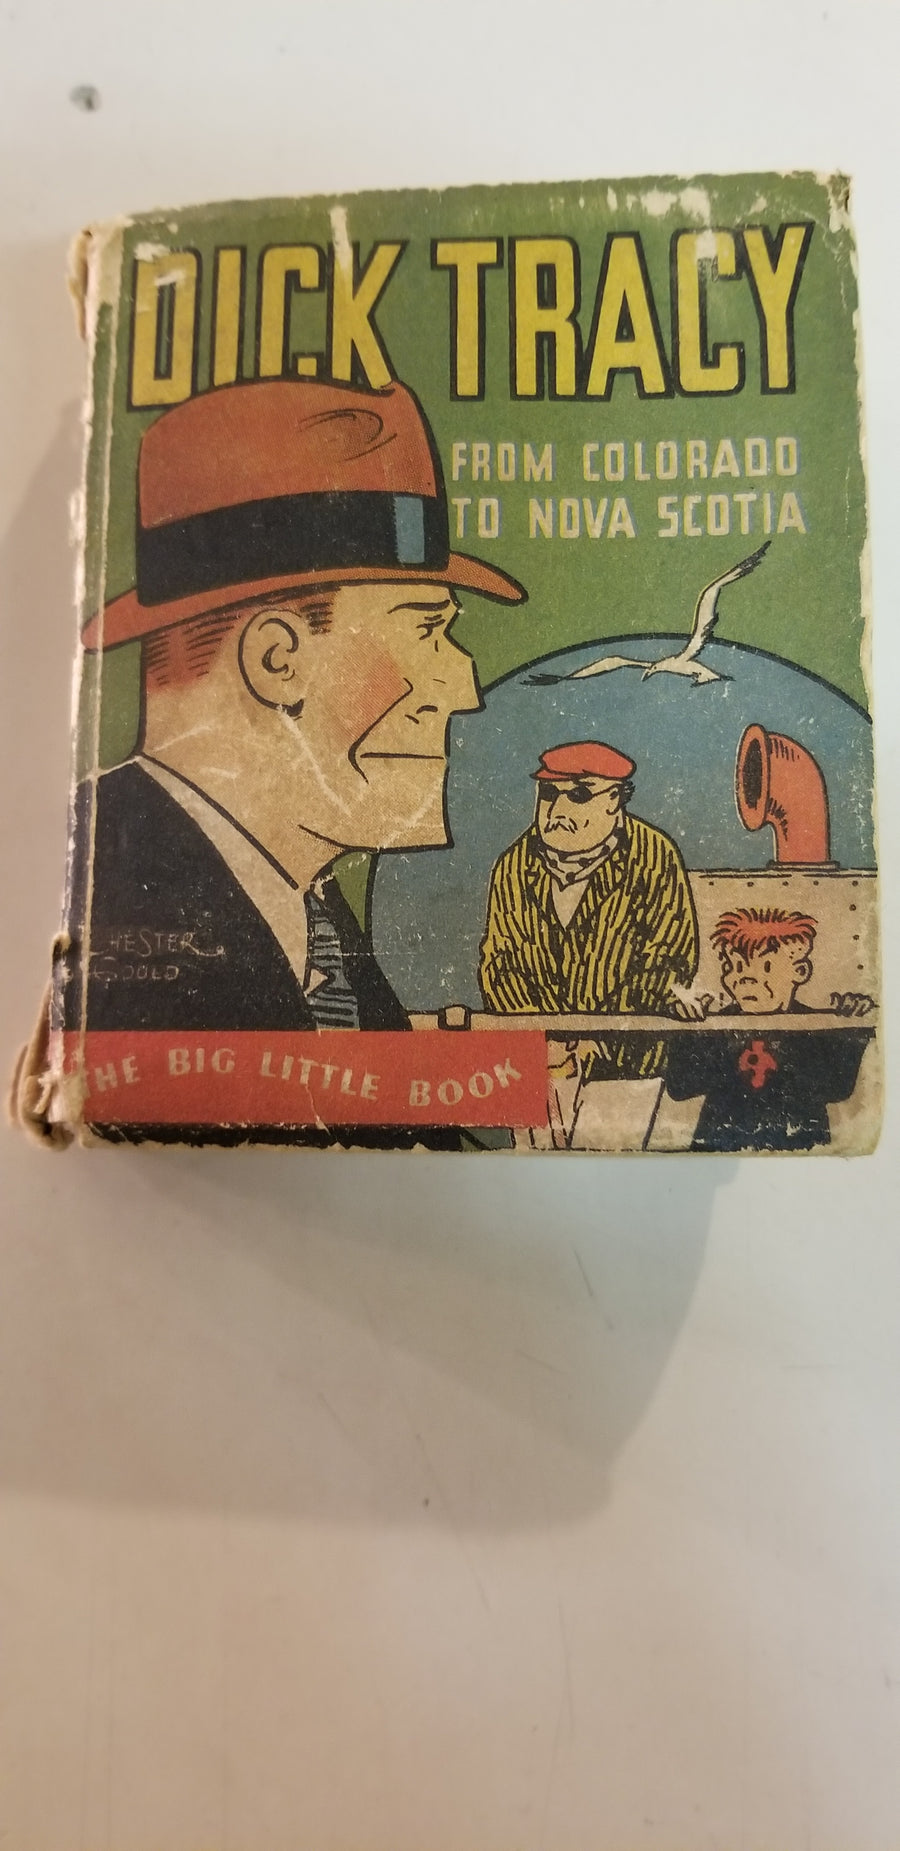 Dick tracy, from Colorado to nova scotia, LBB, 1933